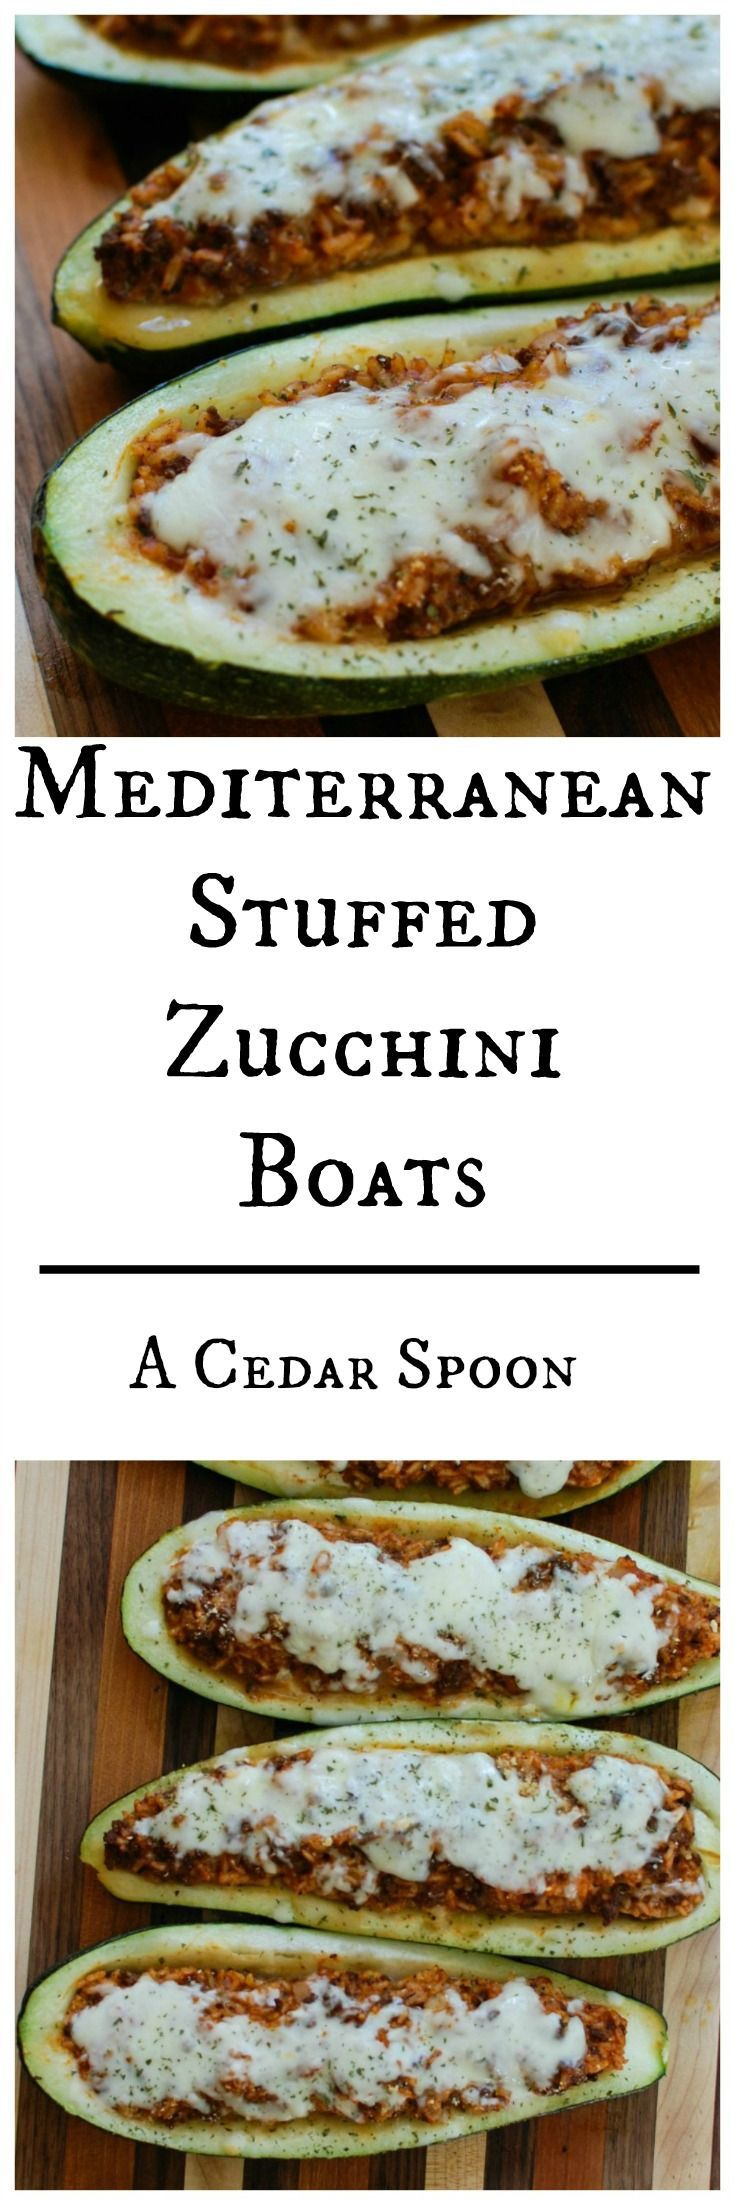 Mediterranean Zucchini Boats take summer zucchini and stuff them with a mixture of ground beef and lamb, rice, tomato sauce, cumin, cinnamon and are topped with cheese and fresh parsley. If you have an abundance of garden zucchini this is the perfect way to use them up! // A Cedar Spoon